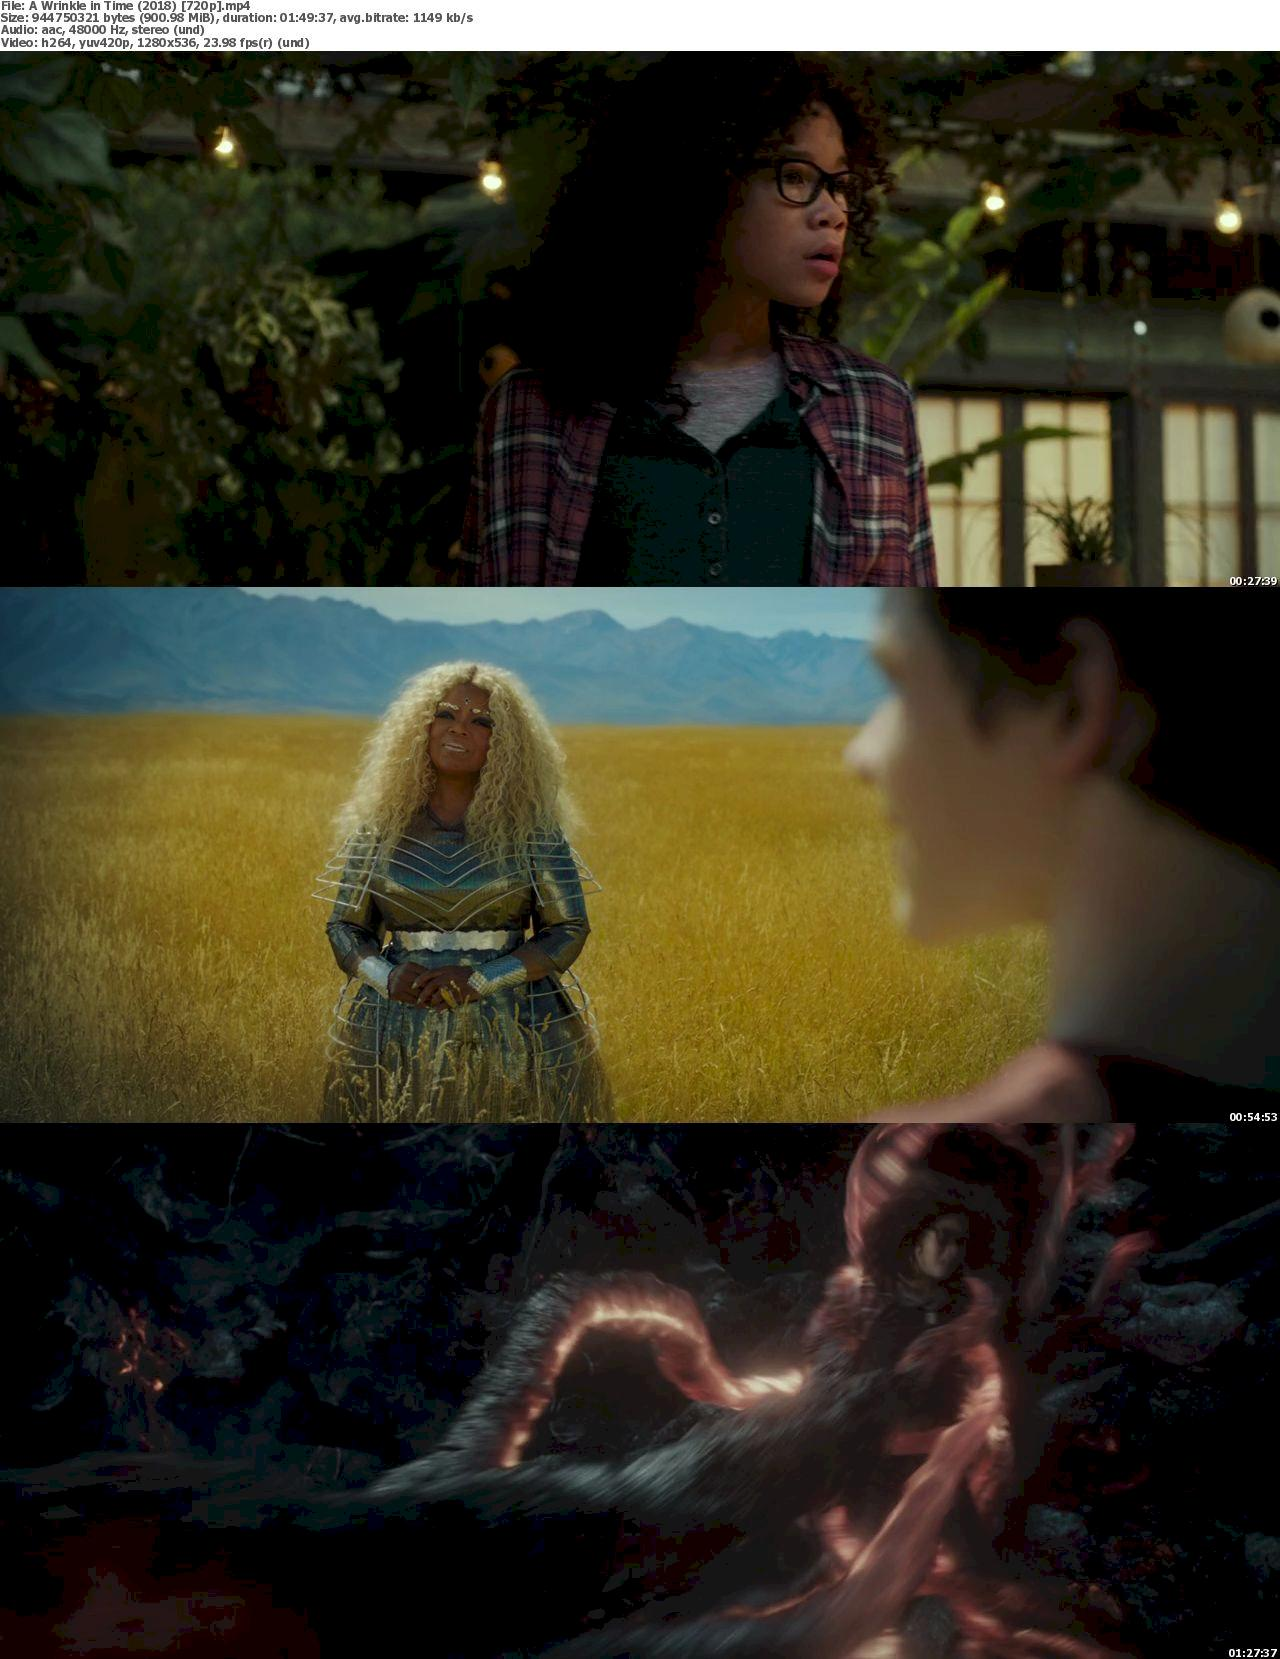 A Wrinkle in Time (2018) [720p & 1080p] Bluray Free Download 720p Screenshot